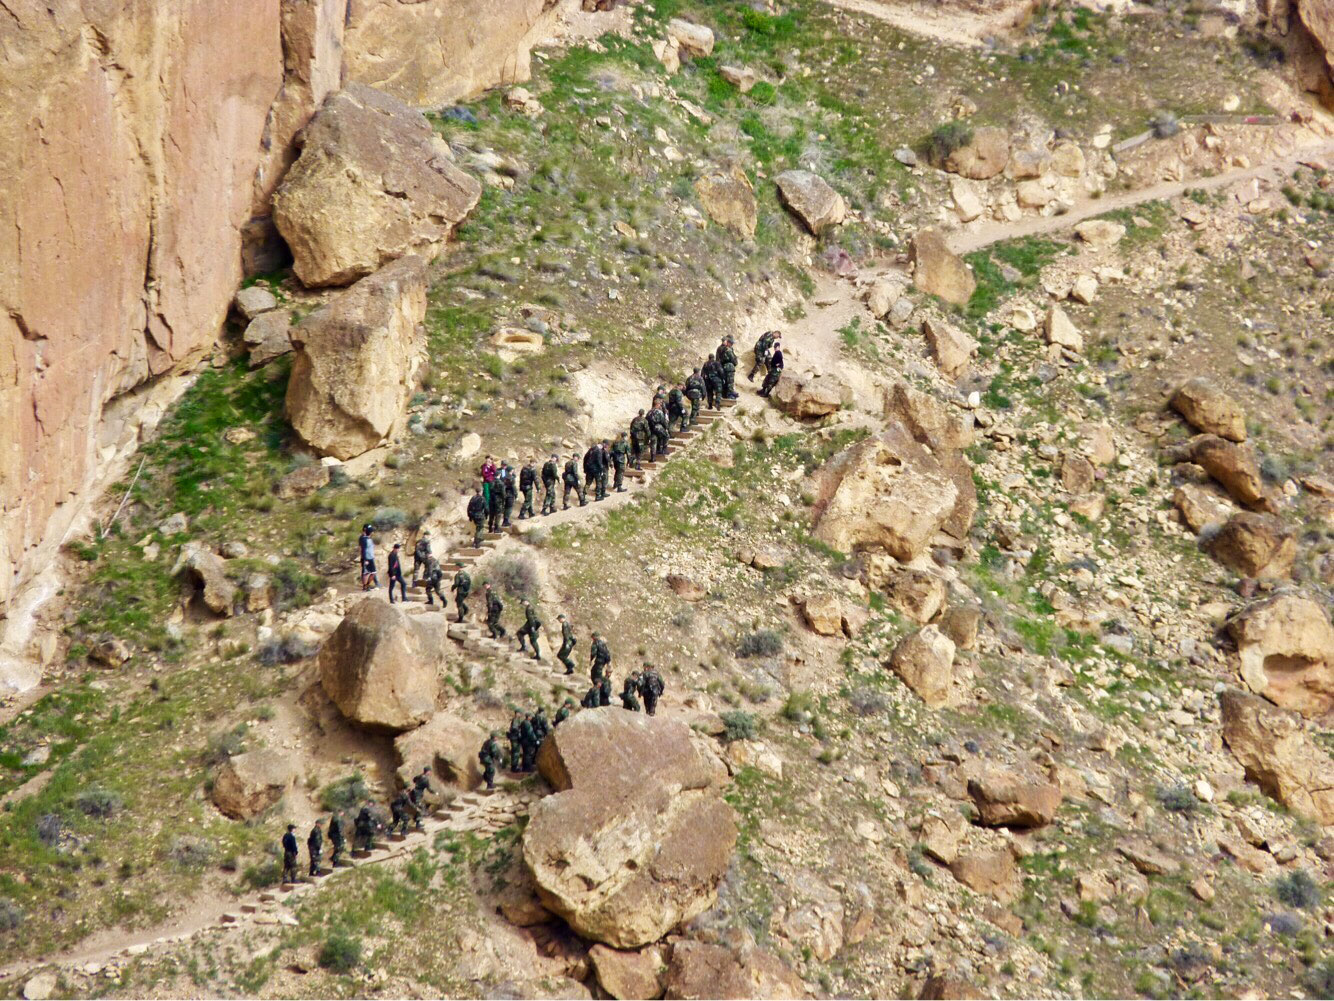 Oregon Youth Challenge Program cadets hike up Misery Ridge Trail at Smith Rock State Park